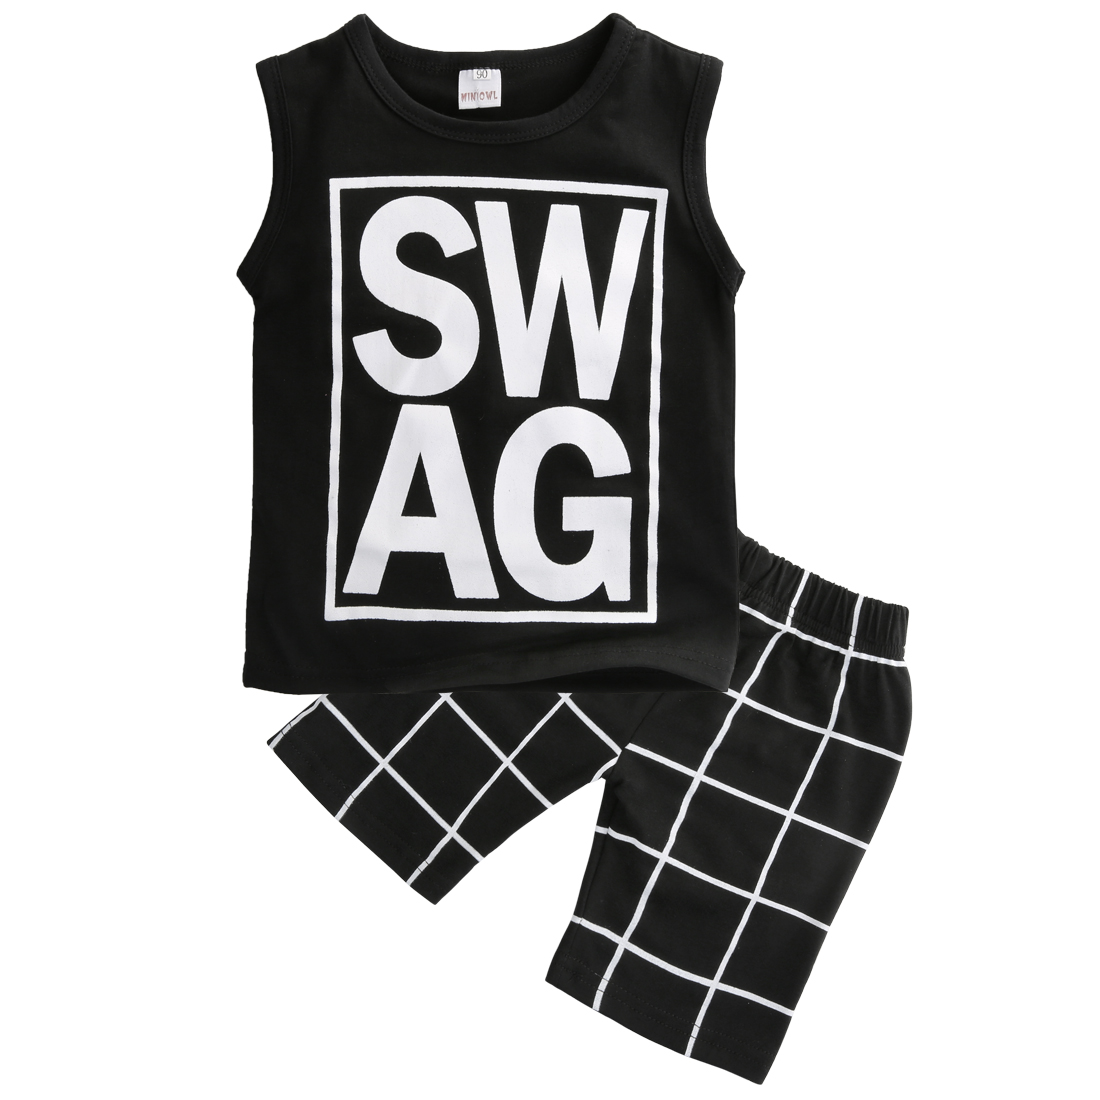 Swag clothing store